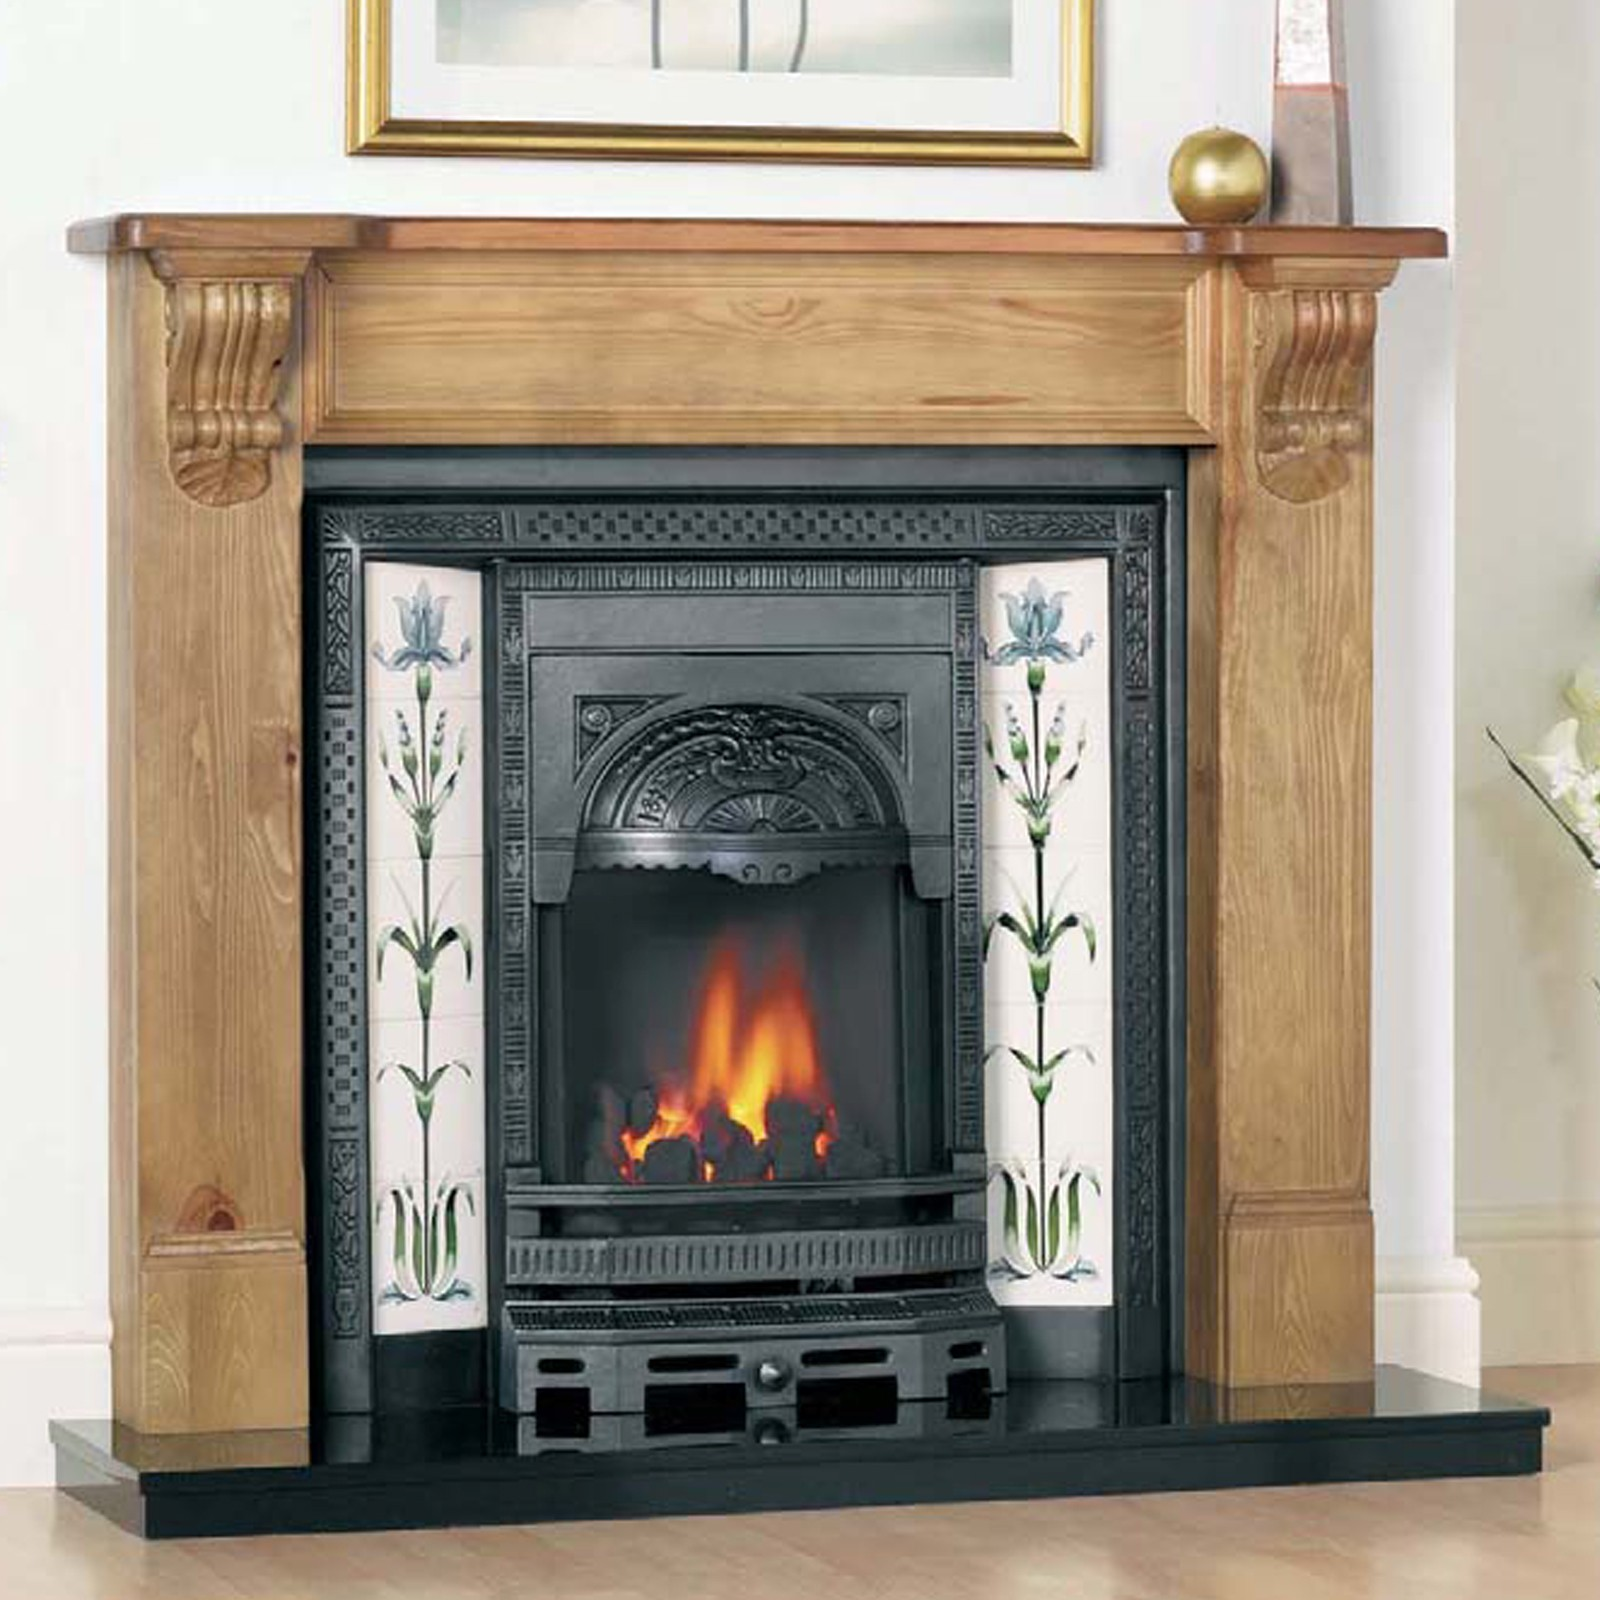 Fantastic Prices Cast Tec Aston Integra Fireplace Insert Uk Leading Stockists